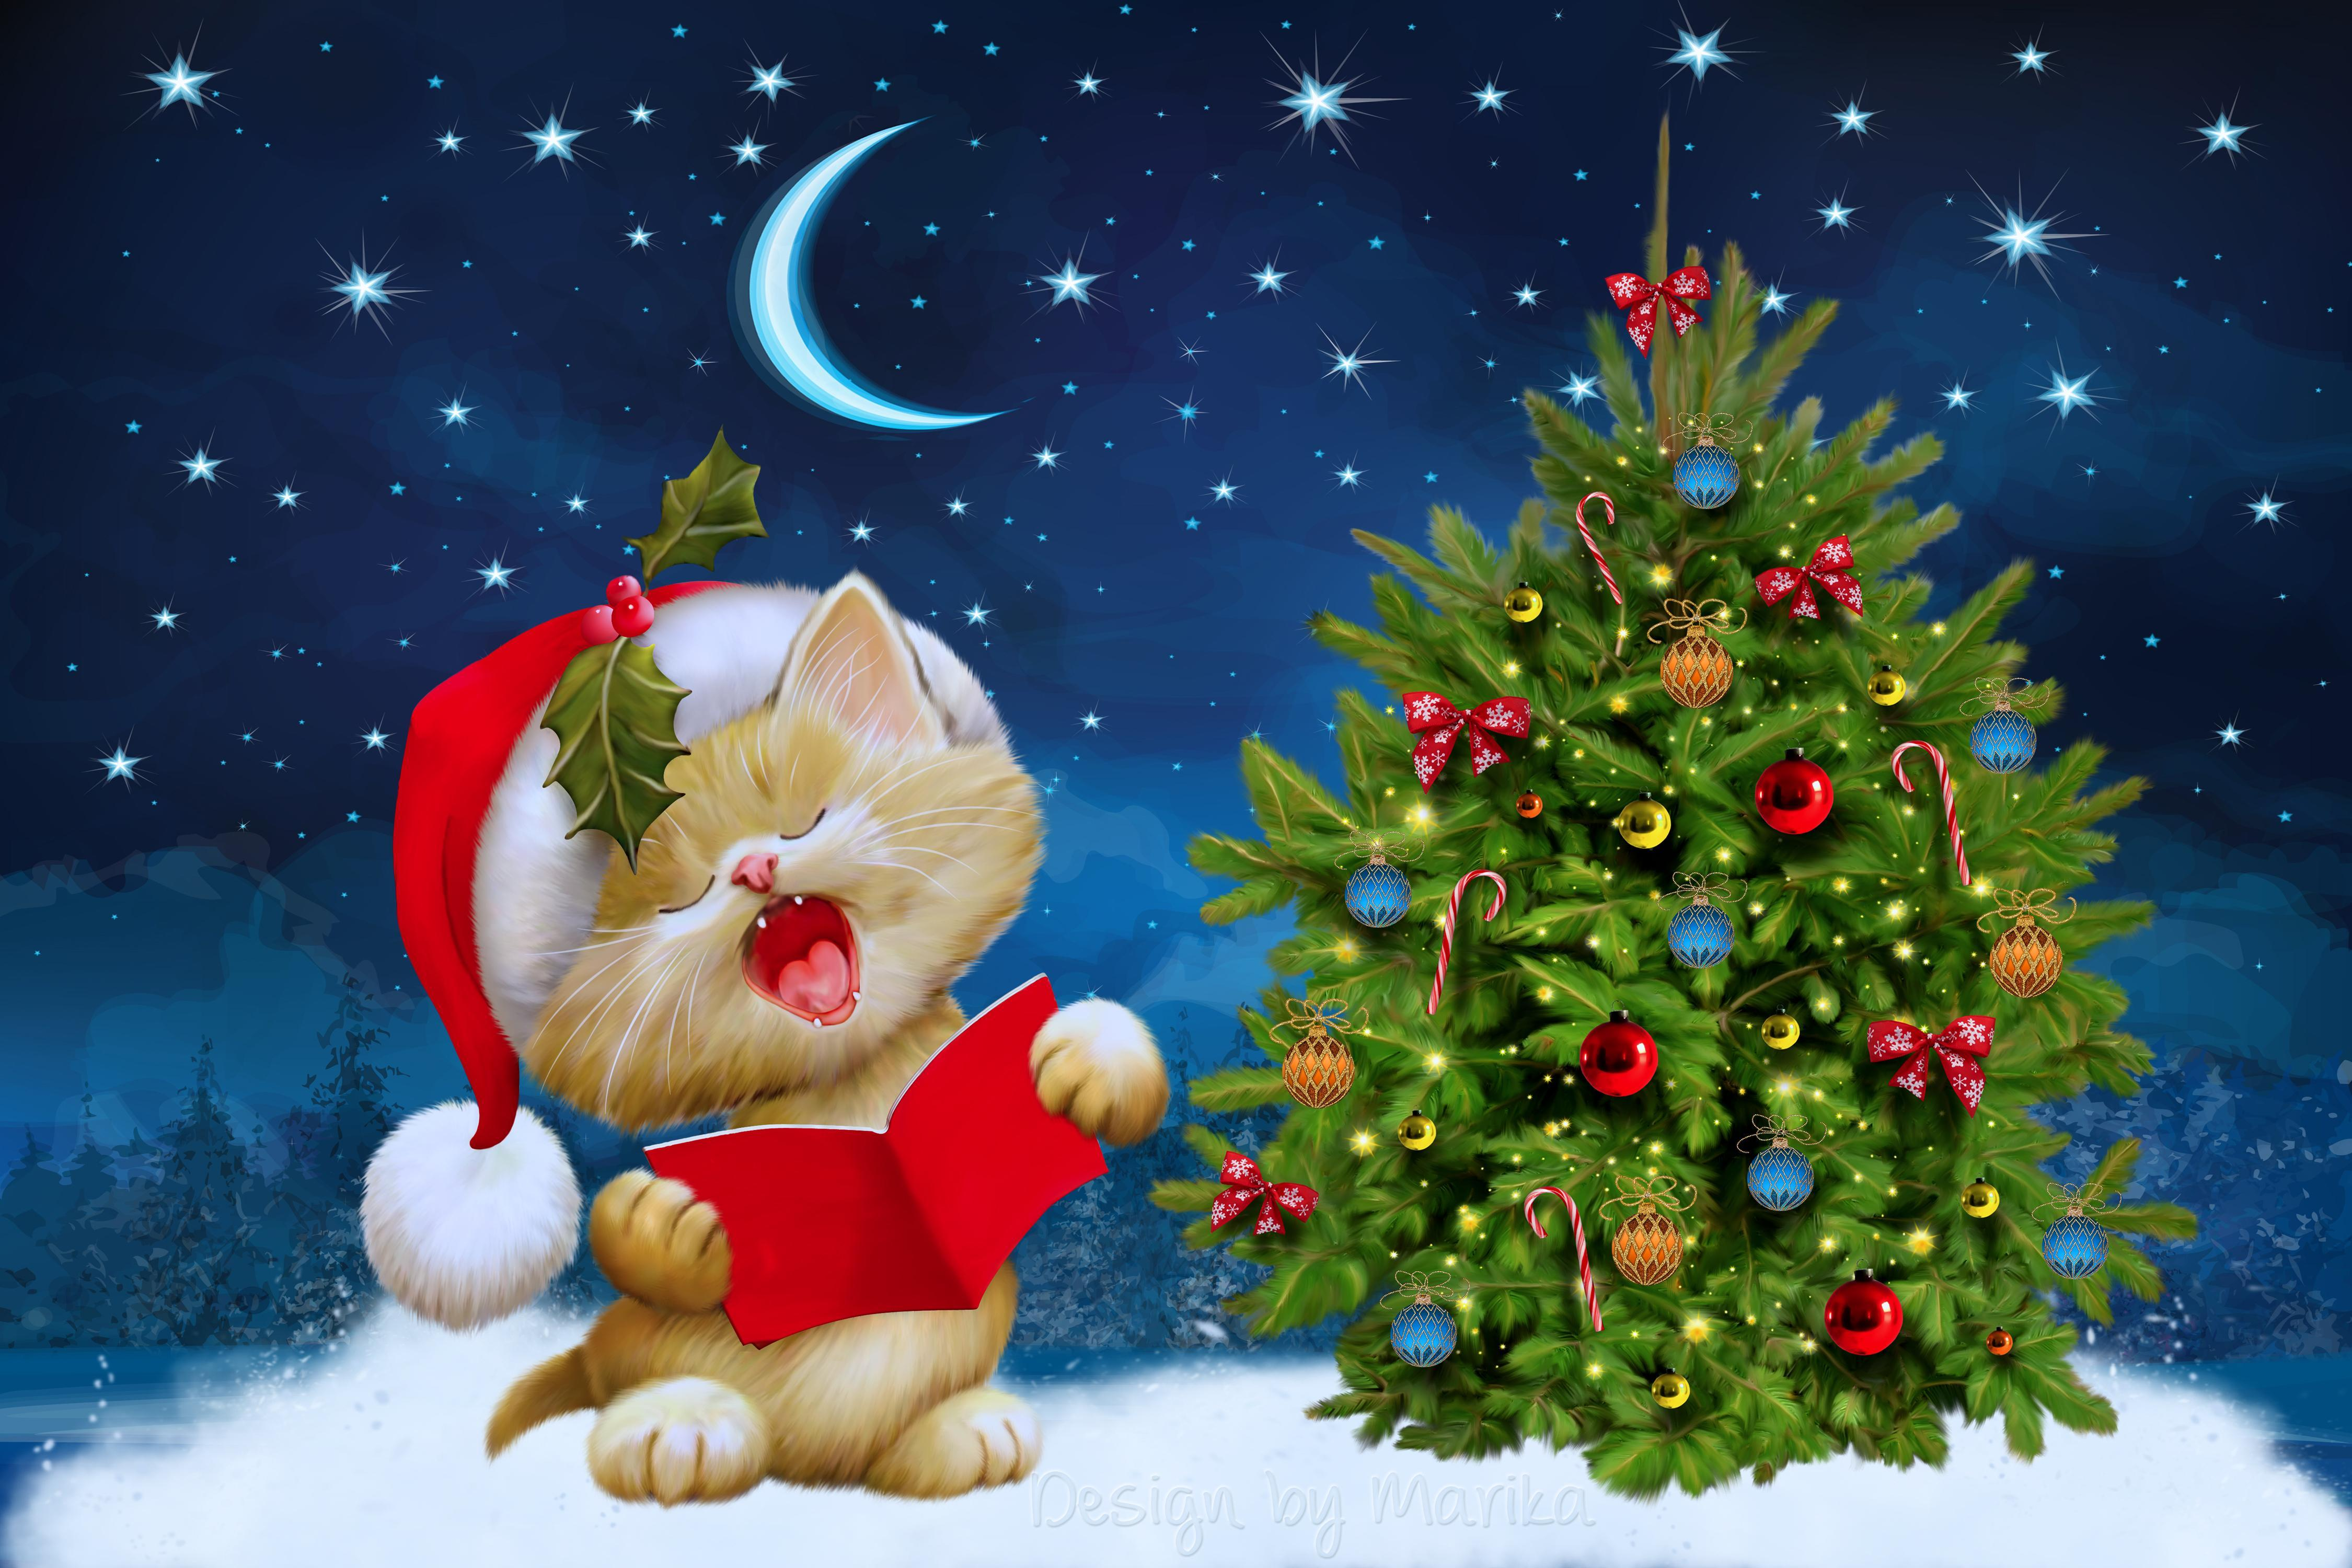 Download wallpapers 4500x3000 new year, christmas, cat, card hd